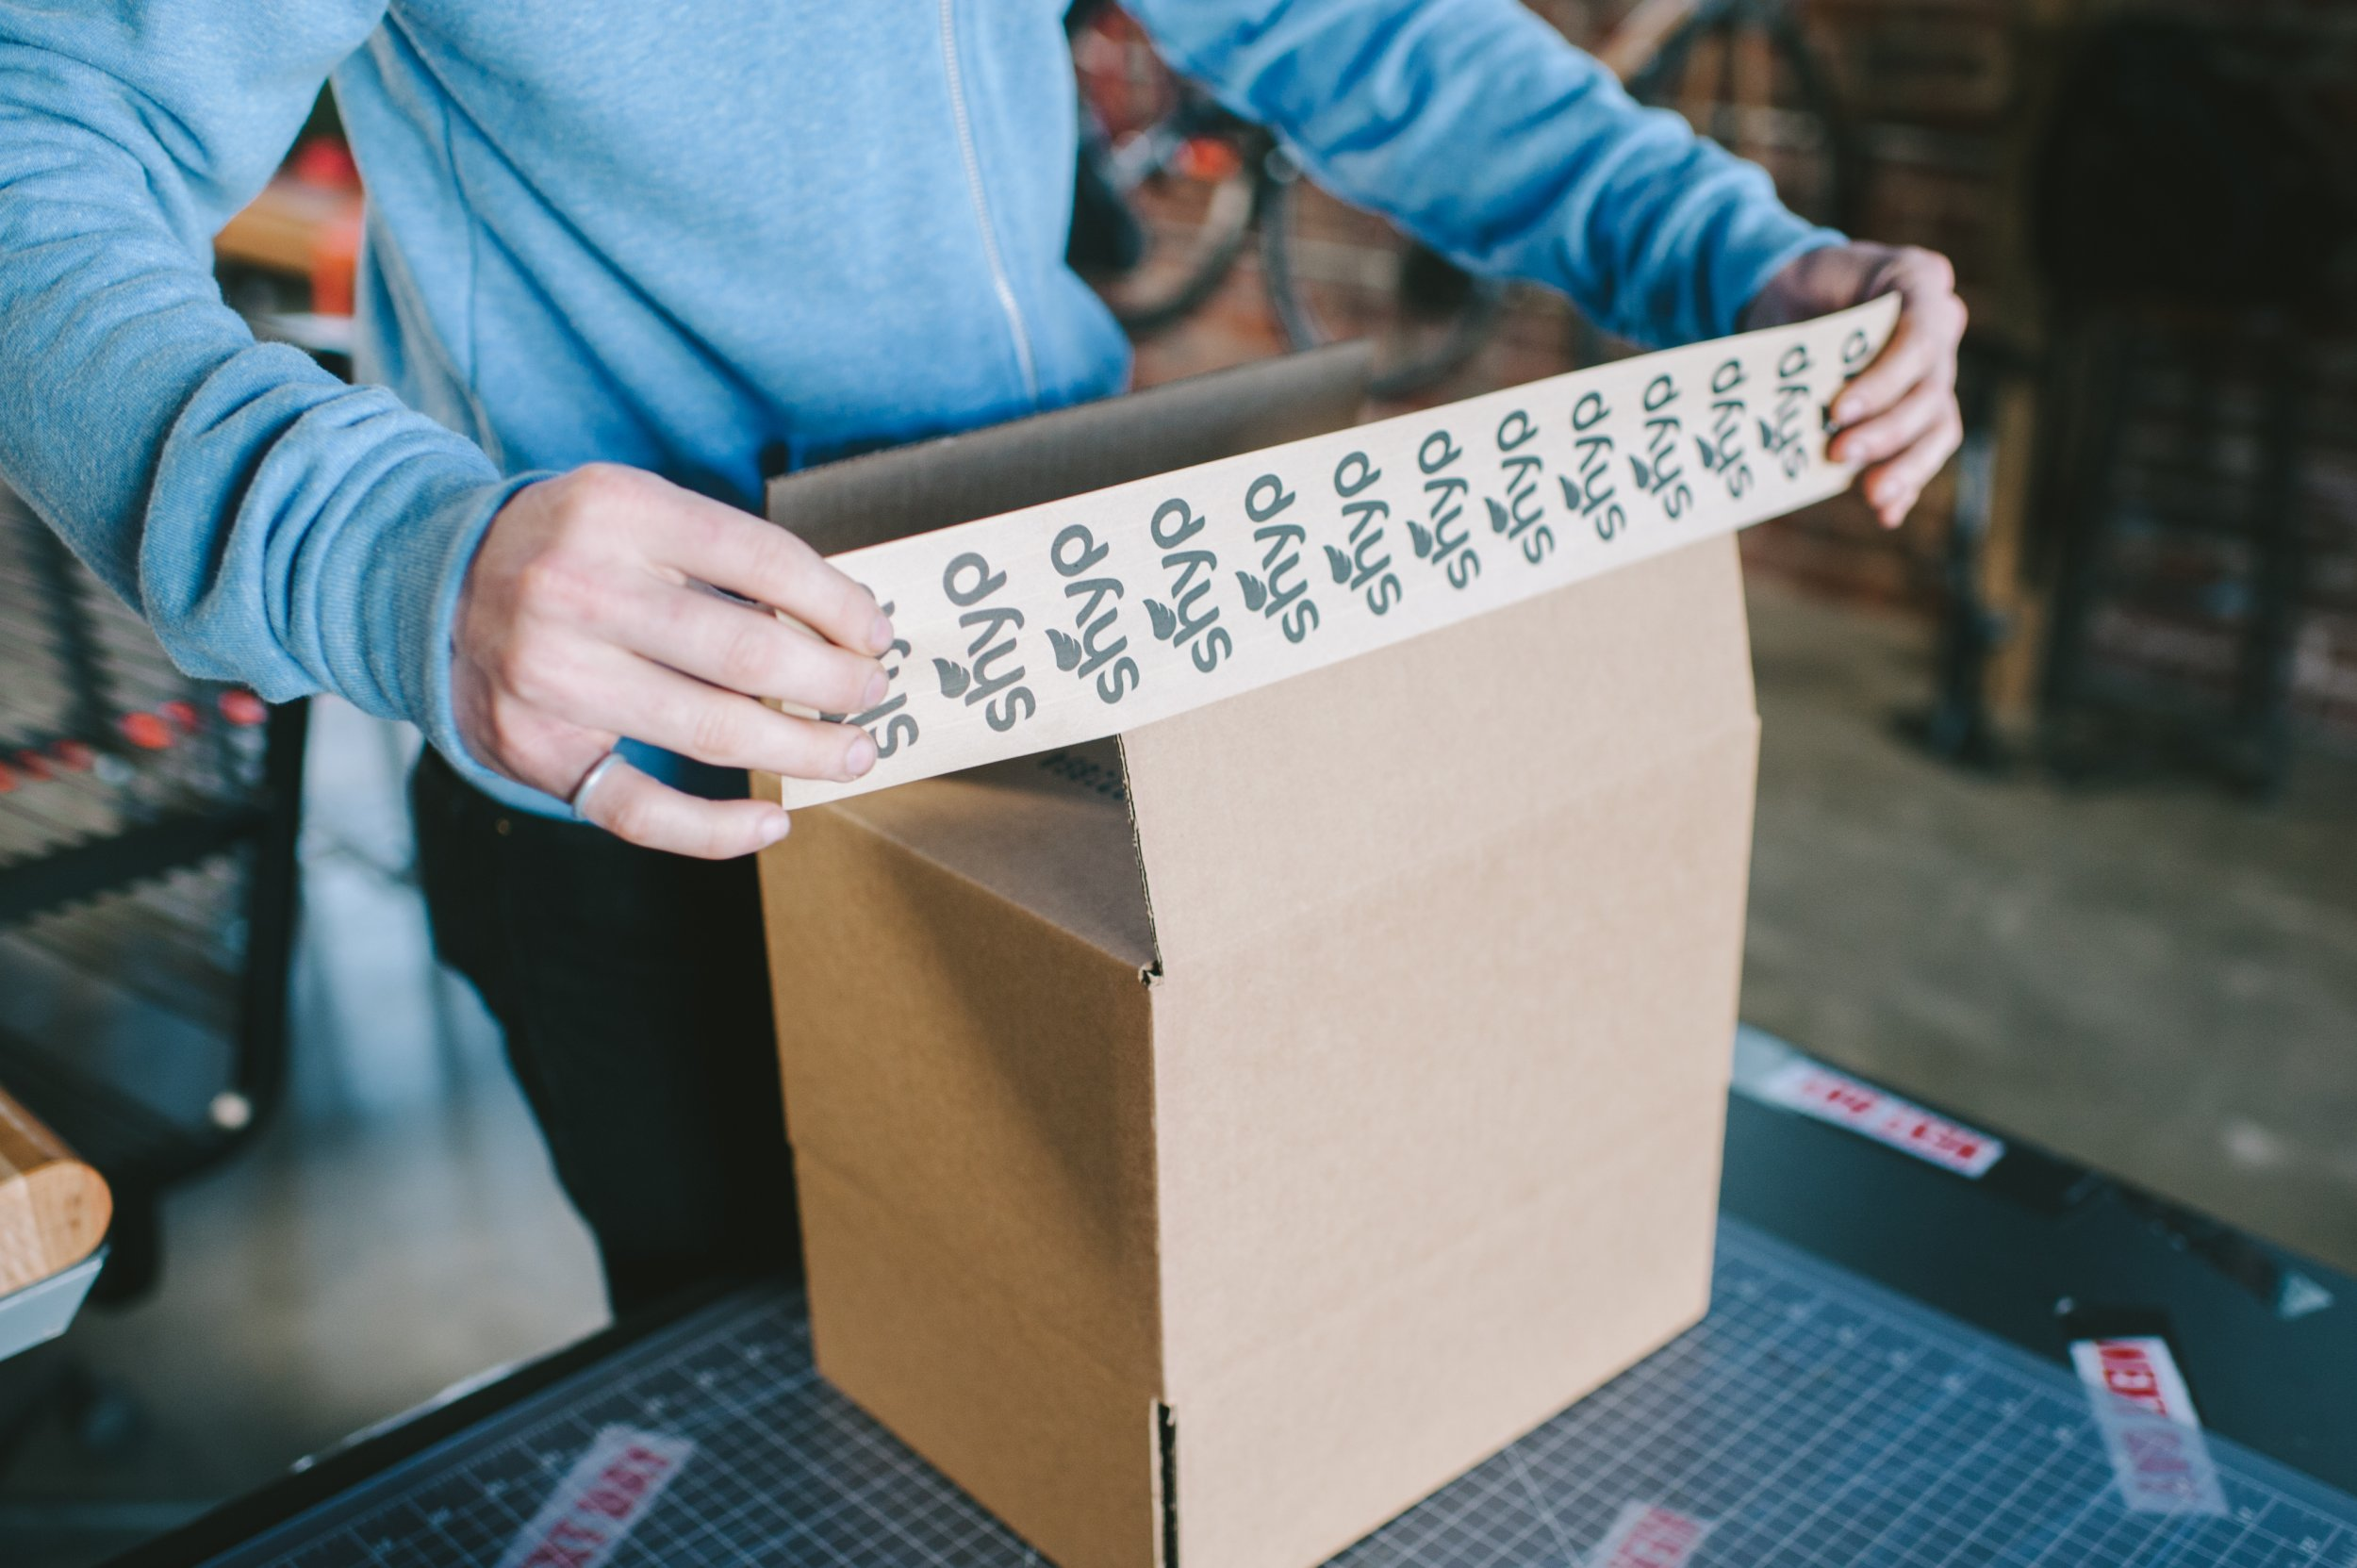 Shyp professionally packages items